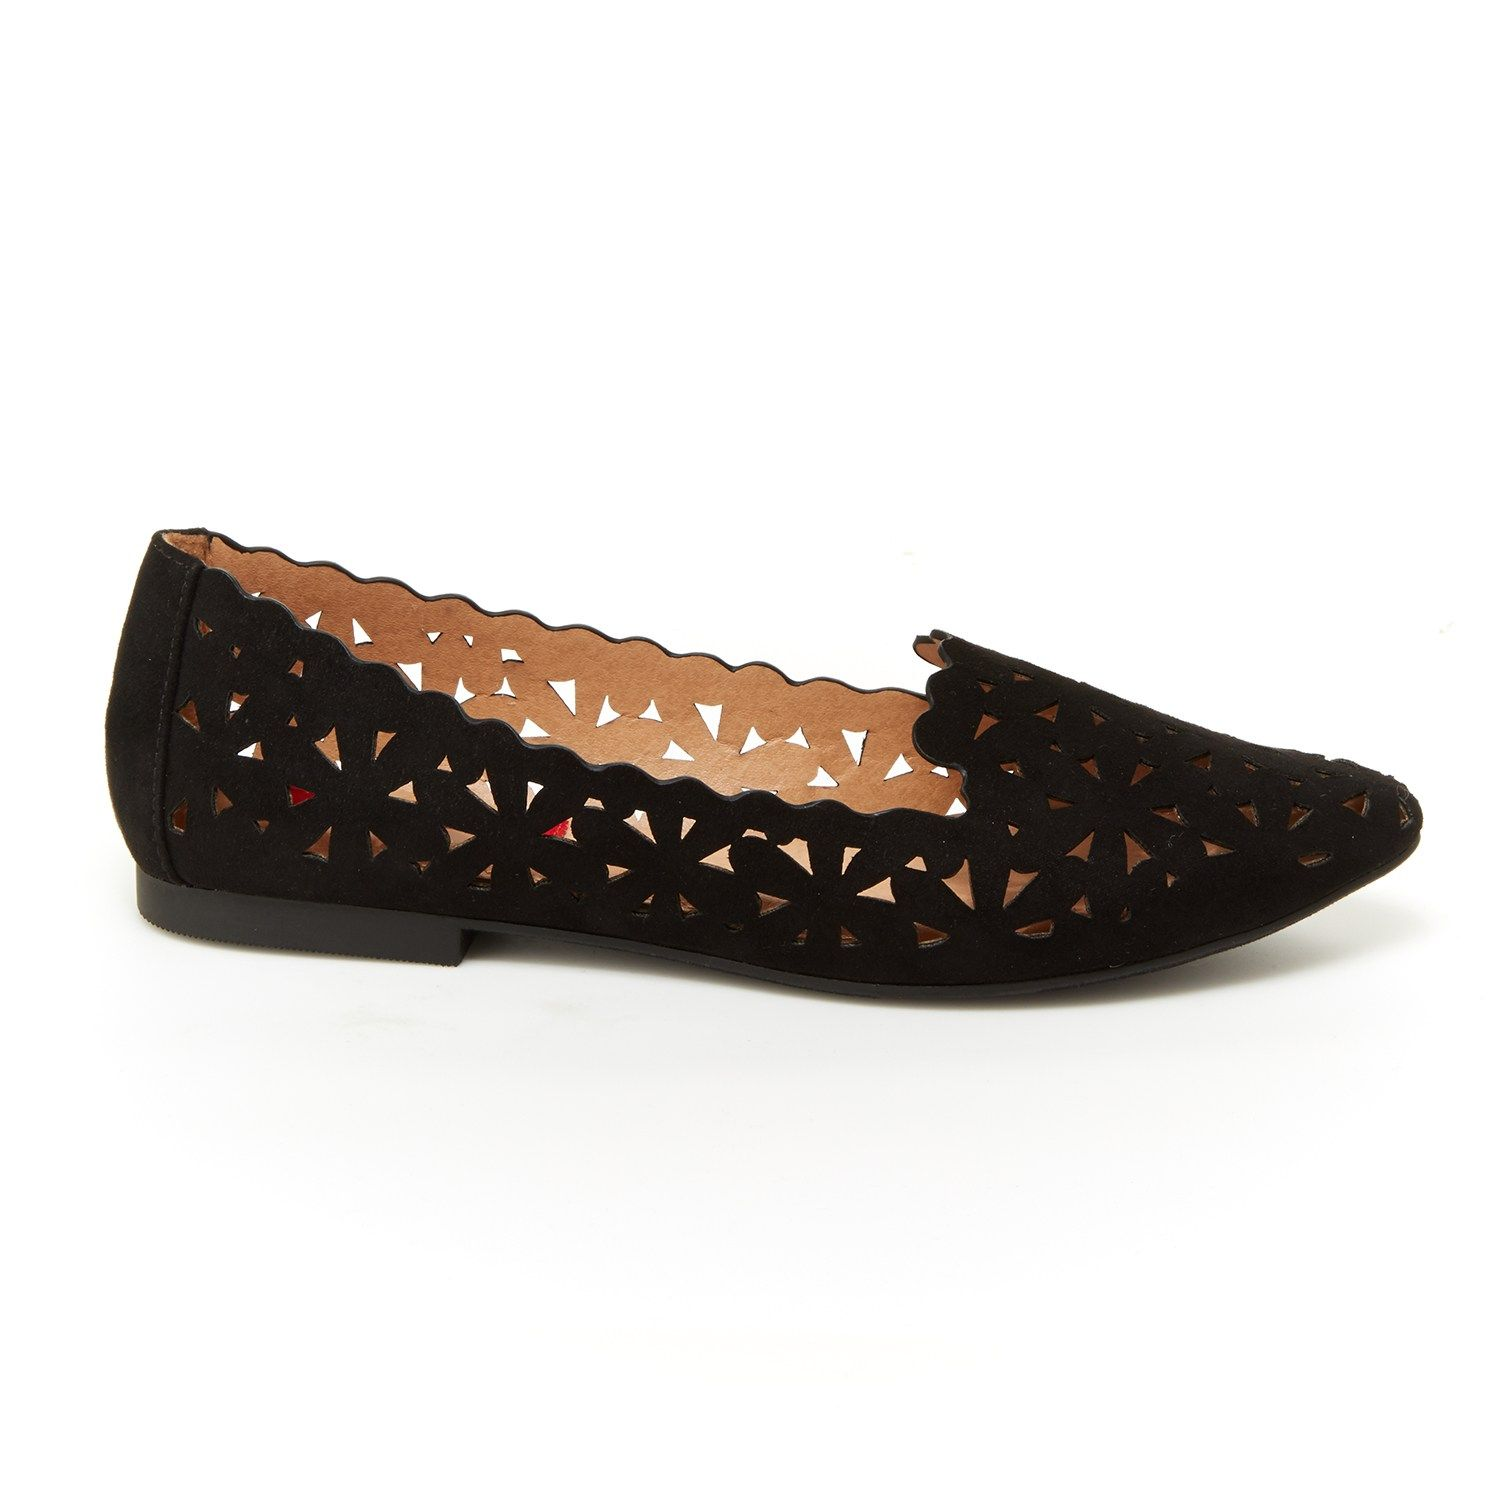 cdc27a83425 Unionbay Welcome Women s Perforated Loafer Flats in 2019